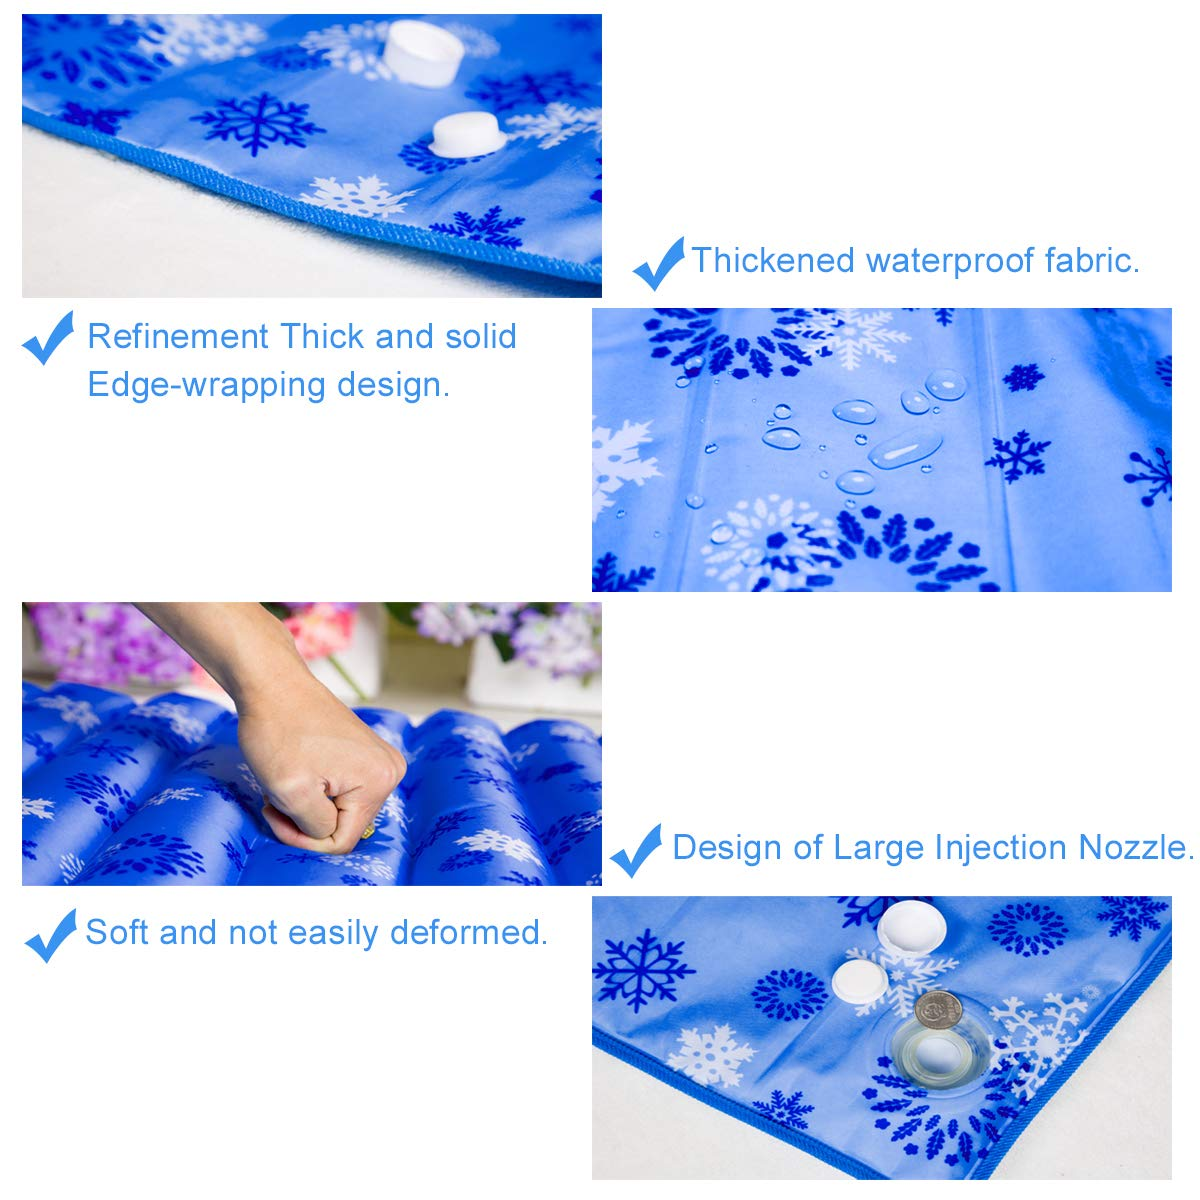 Methray Water Cooling Seat Cushion for Office Chair /& Car Seat Cushion 48CM Soft Summer Ice Water Pad for Baby,Children,Student,Office,Car,Travel